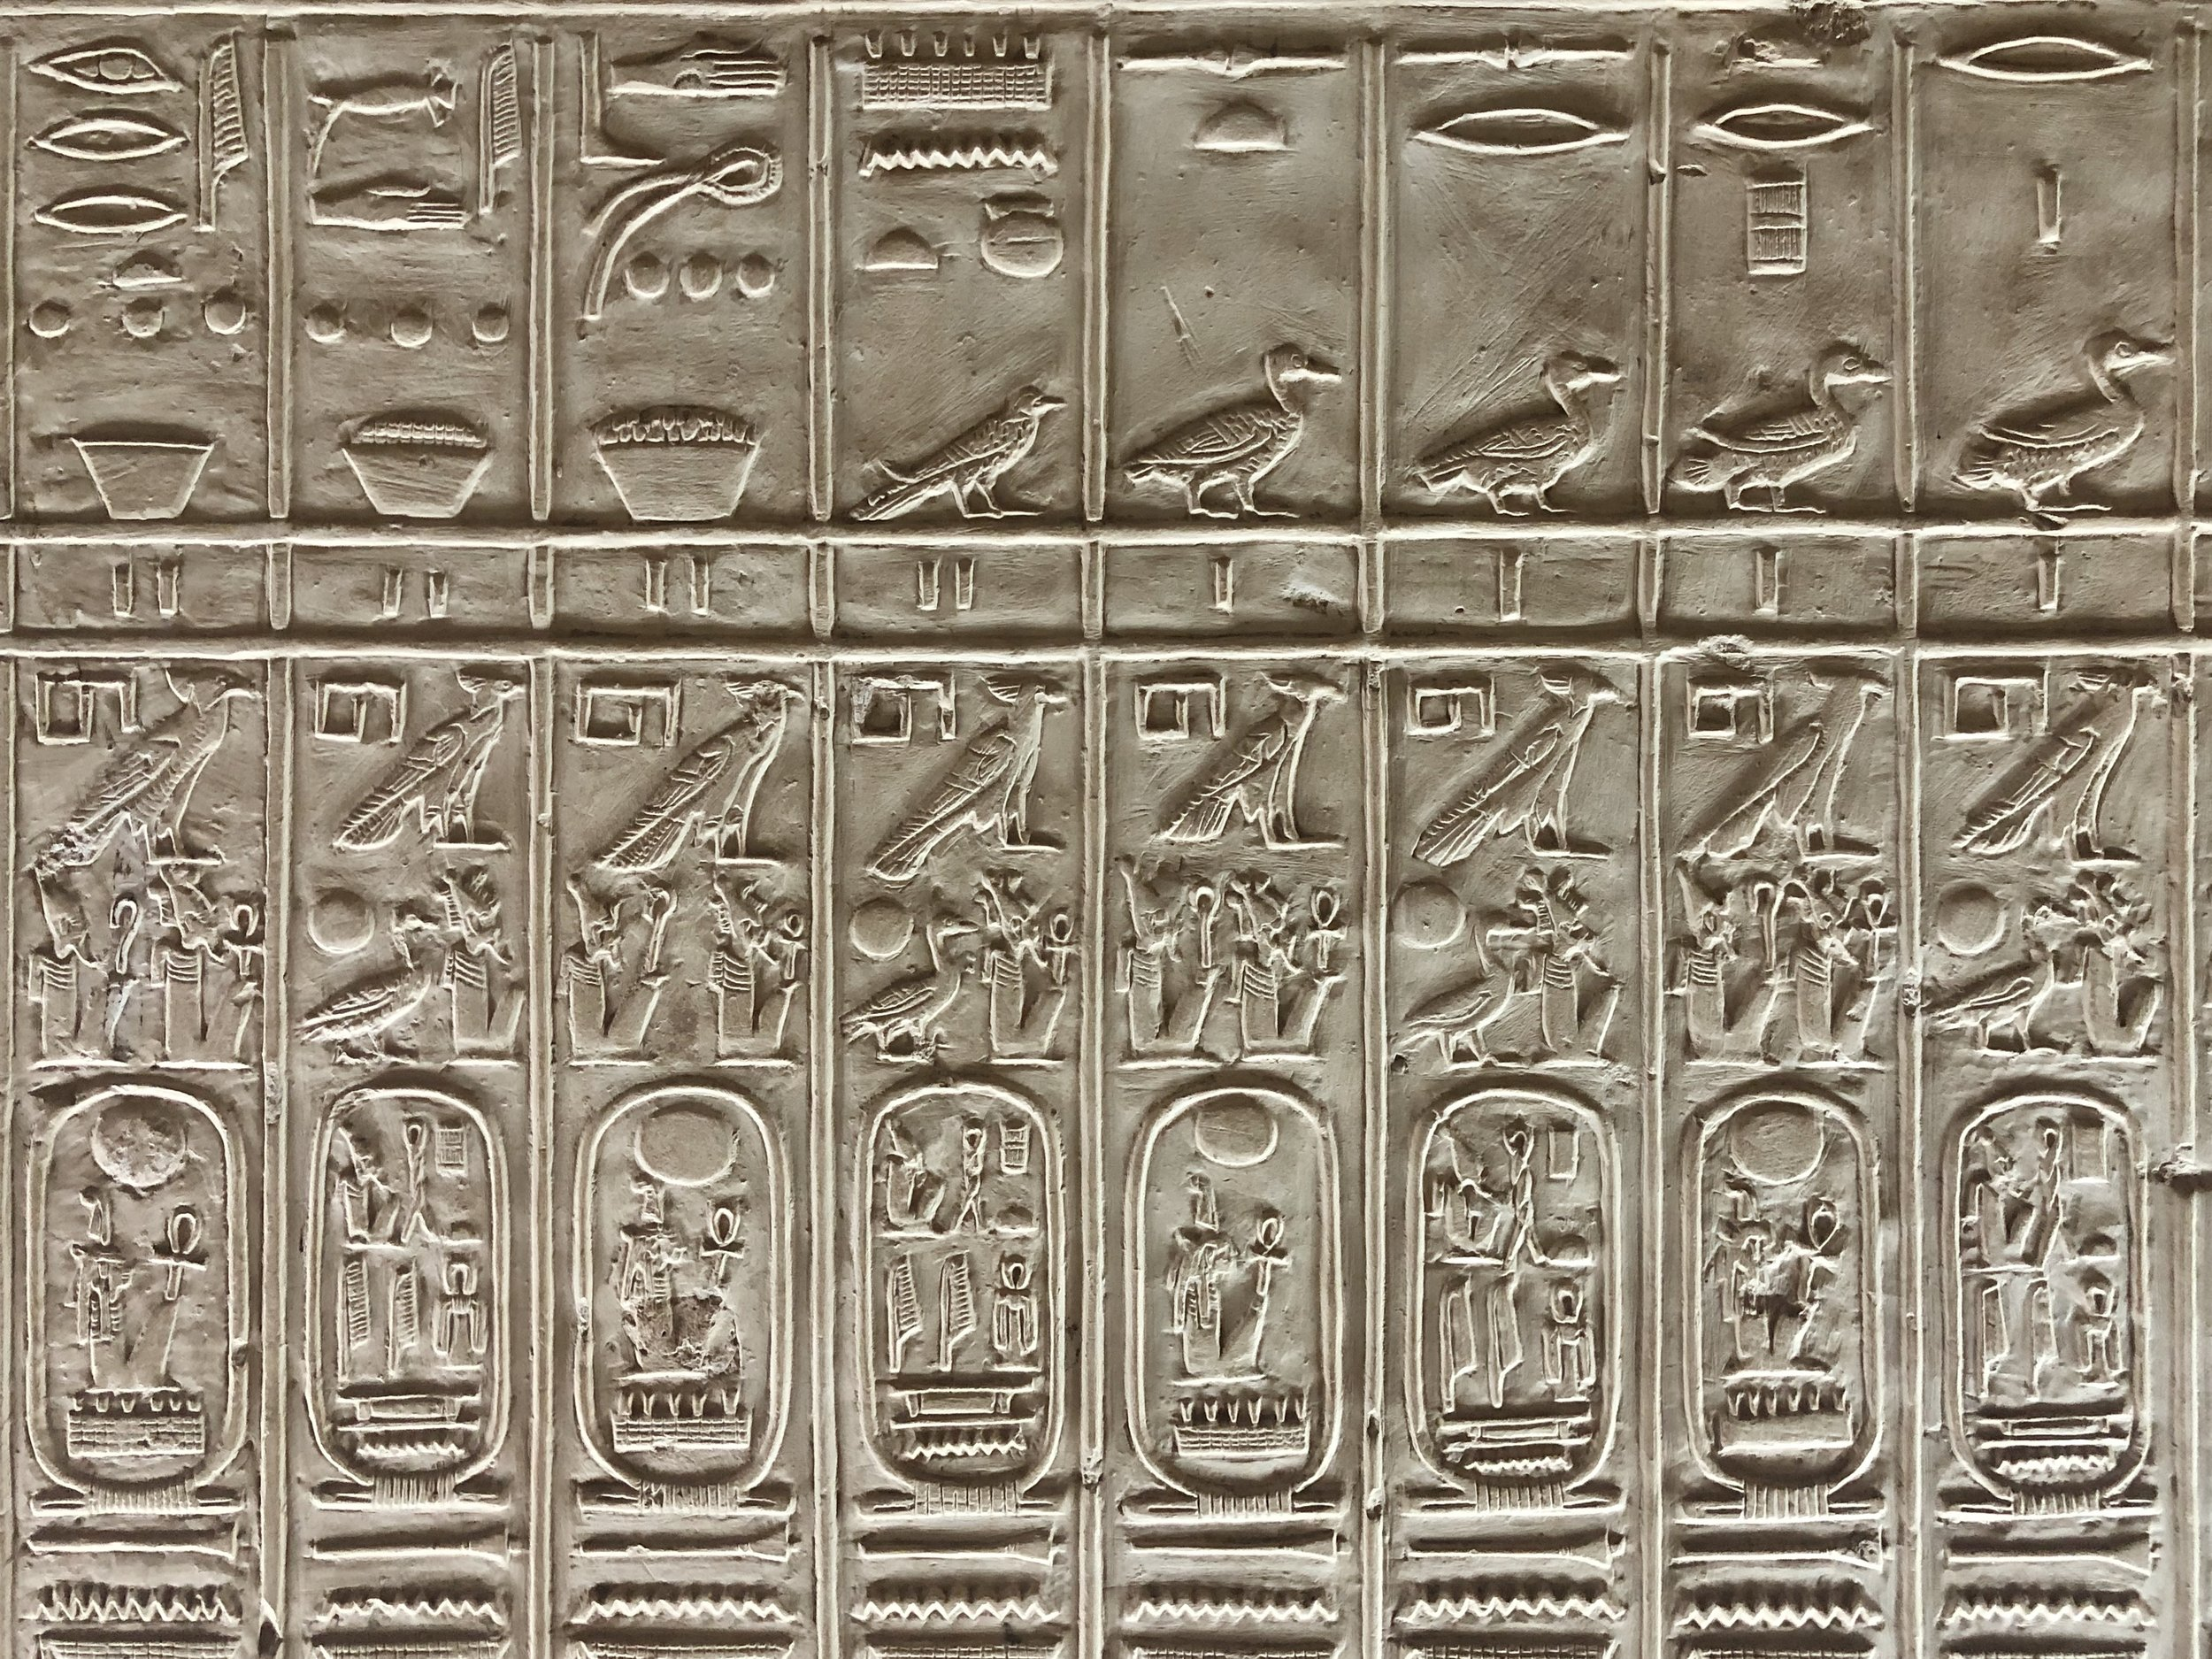 The Kings List depicts the cartouches of all the pharaohs, with some notable omissions, including Hatshepsut and Akhenaten